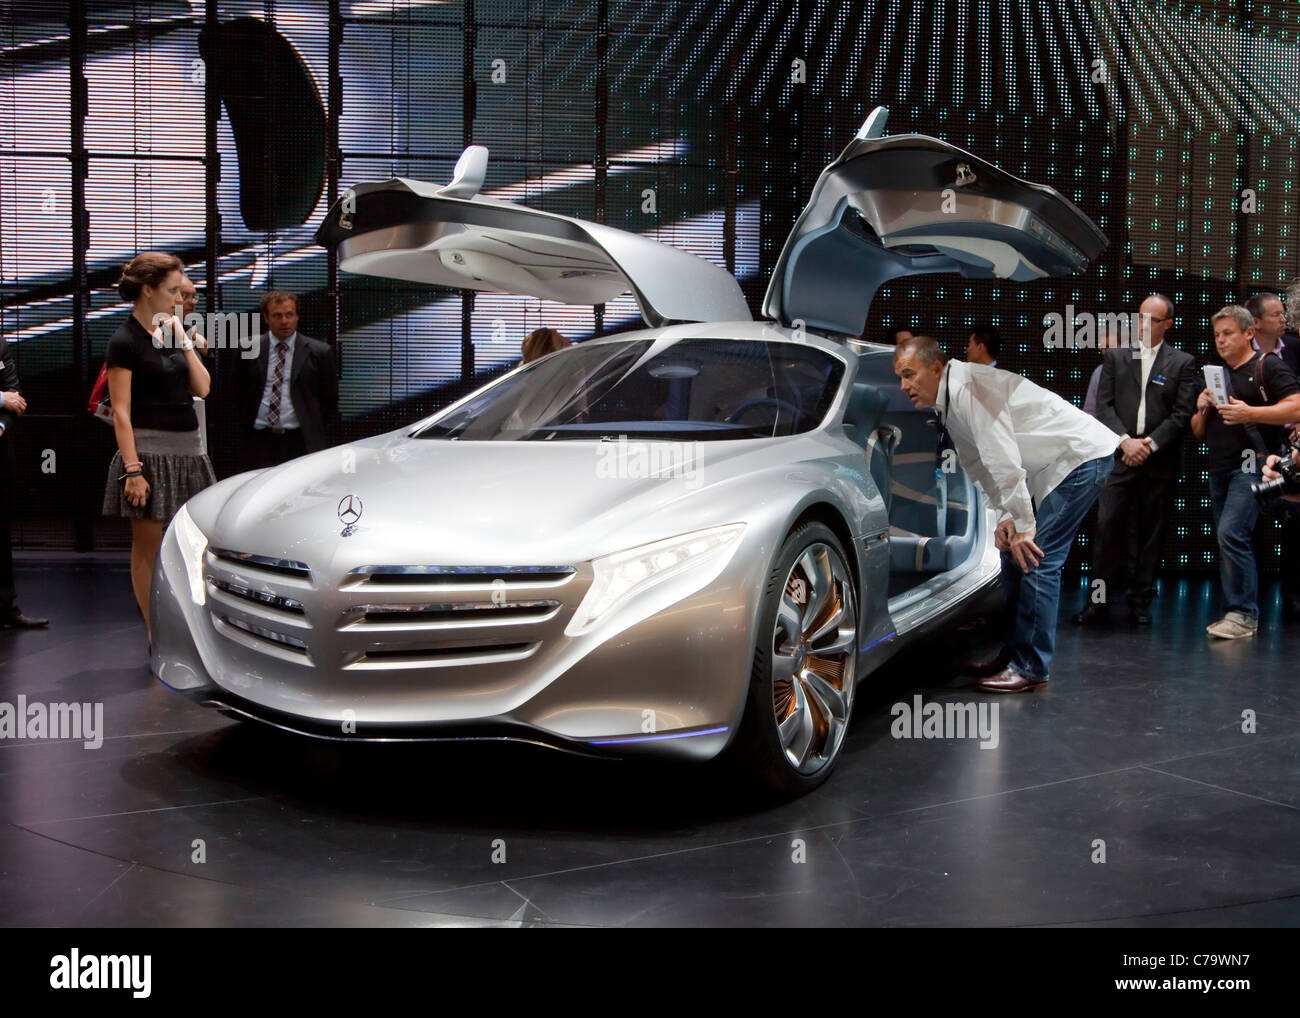 New mercedes benz concept car f125 on the iaa 2011 international stock photo royalty free image - Mercedes car show ...